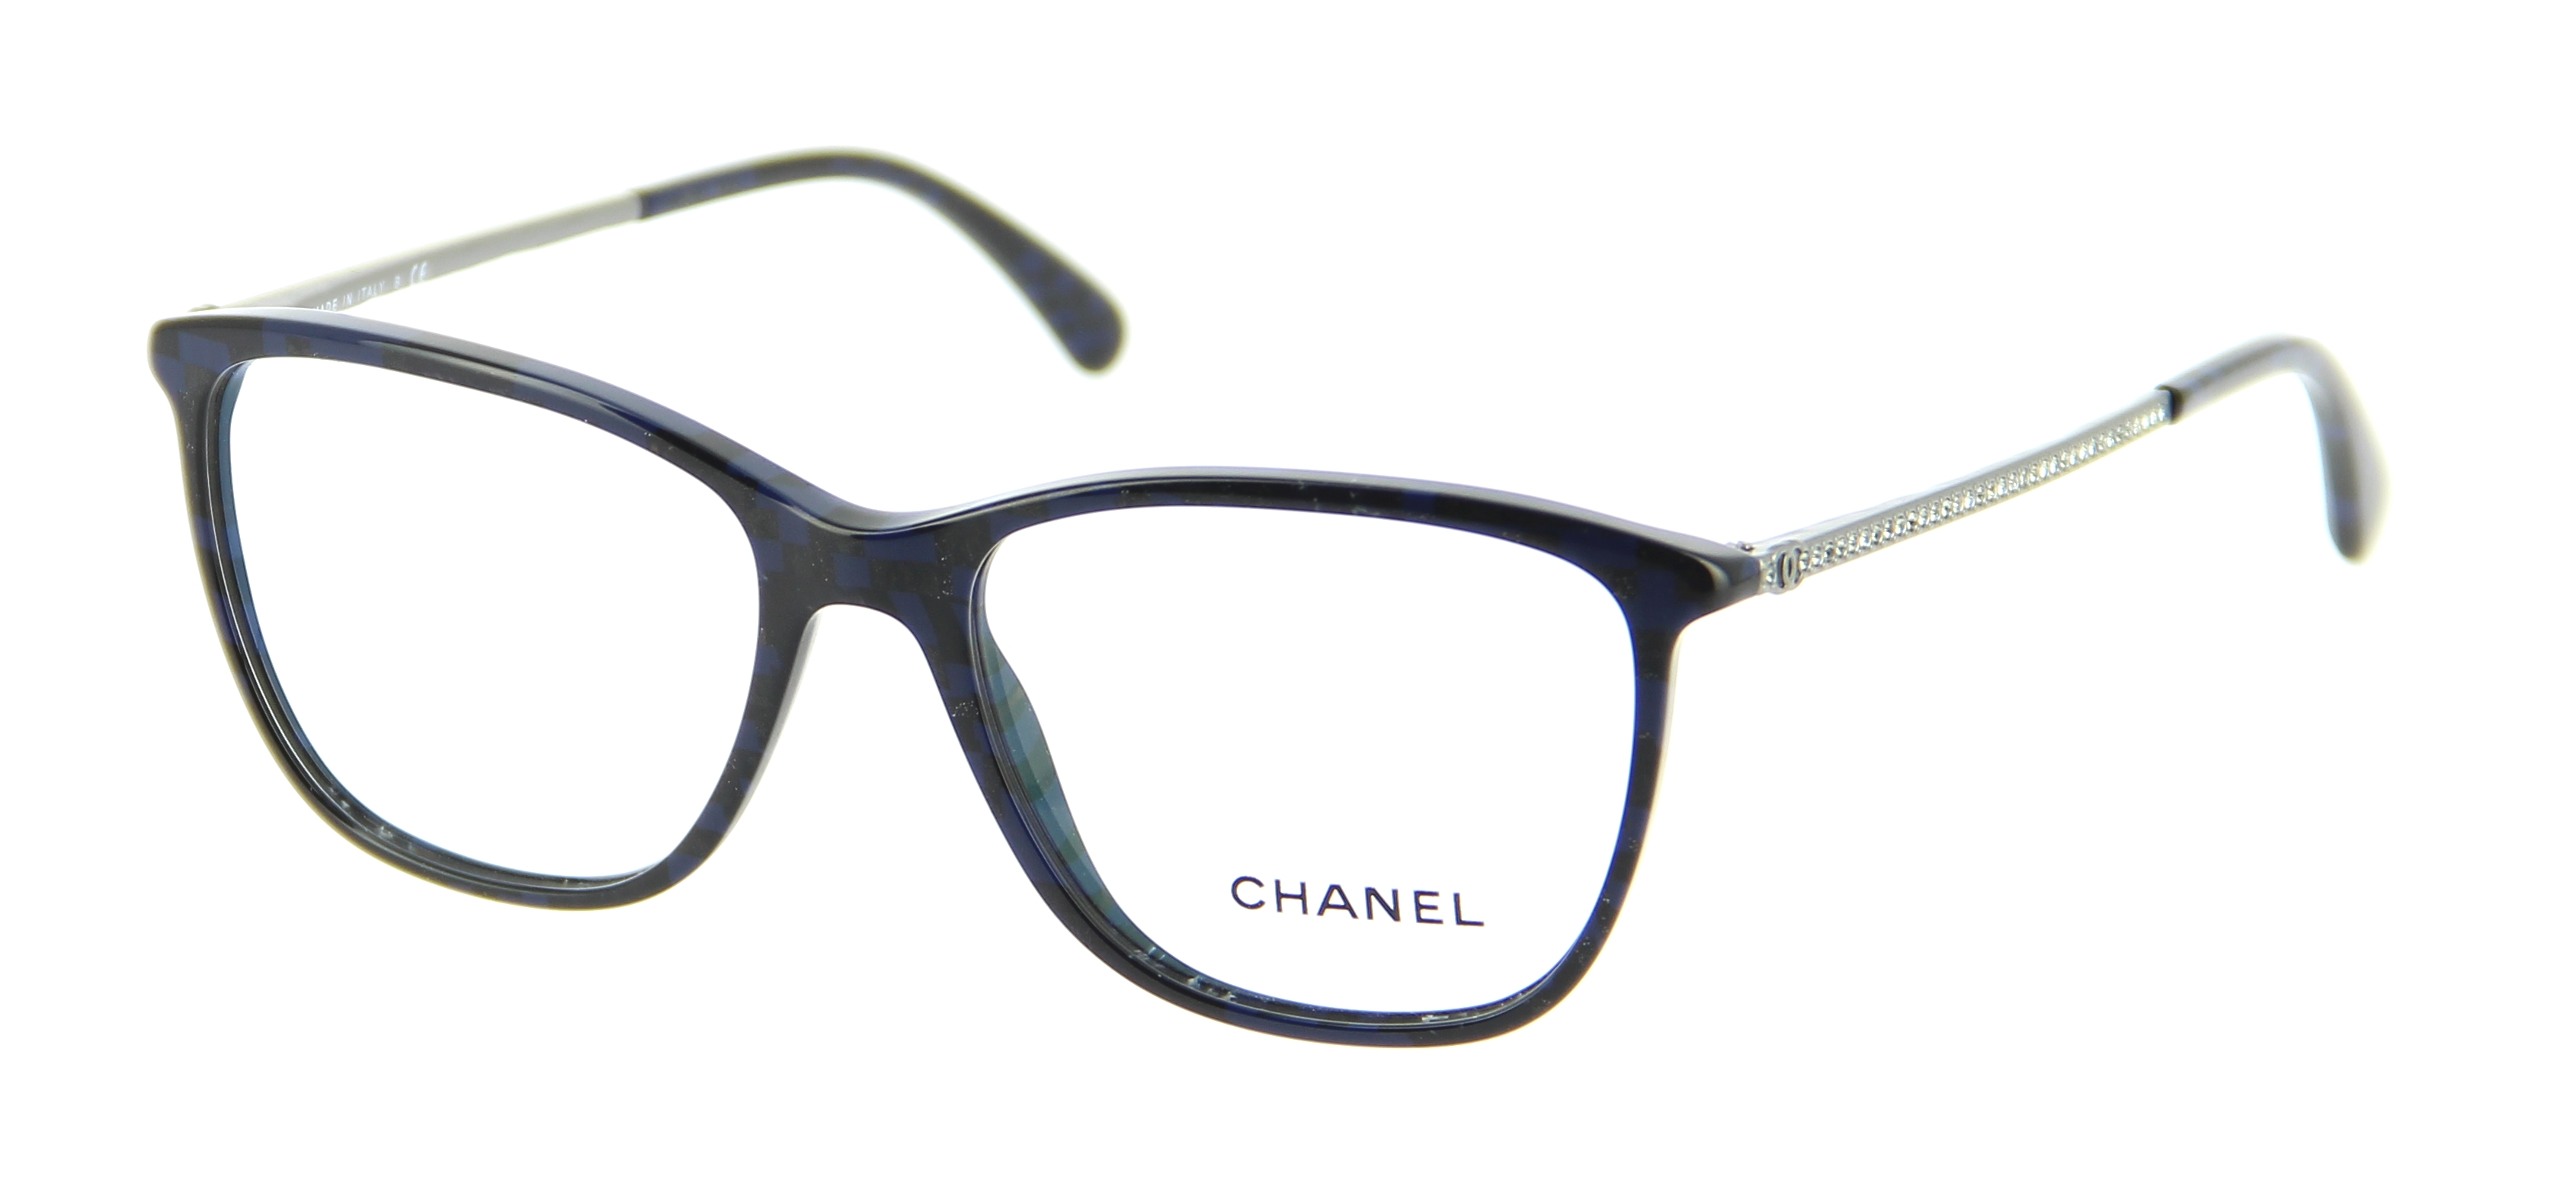 Eyeglasses Frame Chanel : Eyeglasses CHANEL CH 3294B C501 54/16 Woman Noir Oval ...